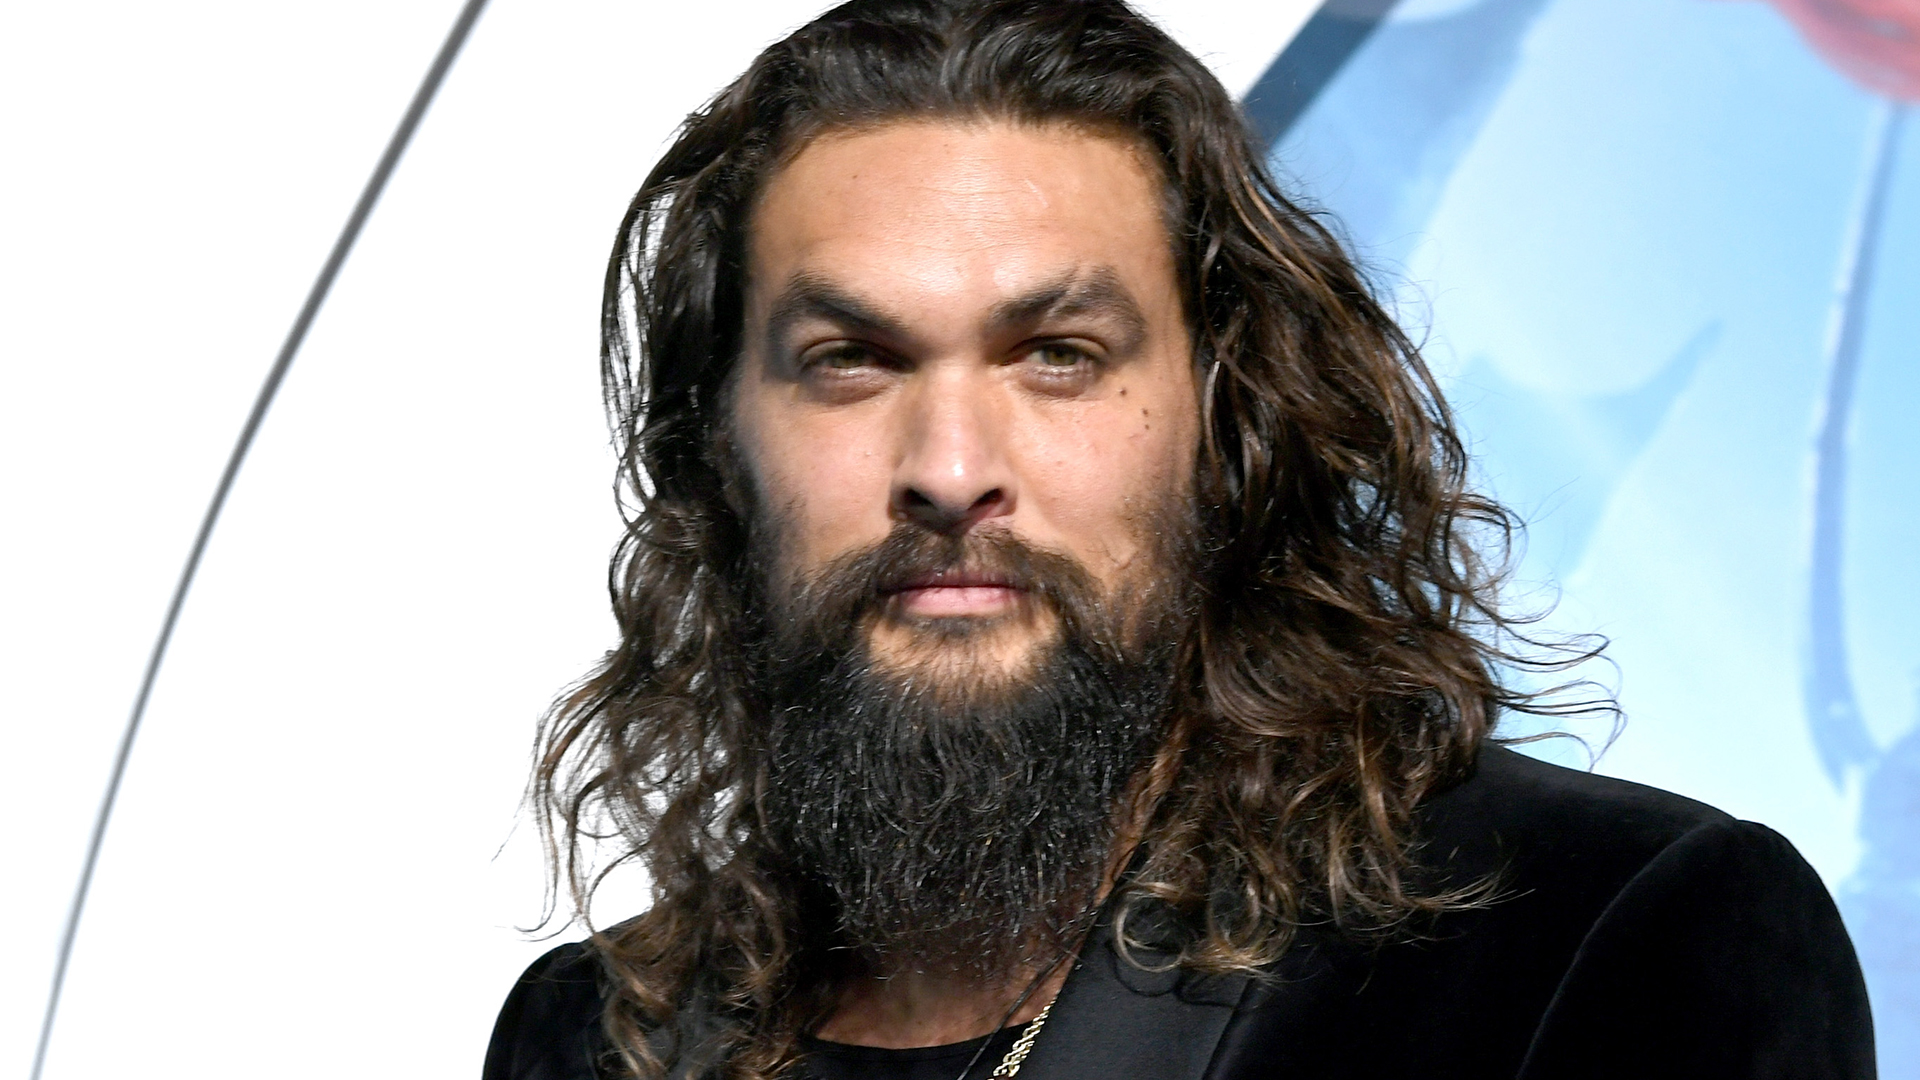 Jason Momoa Has Shaved off His Beard, and a Warning, It's Quite a Shock